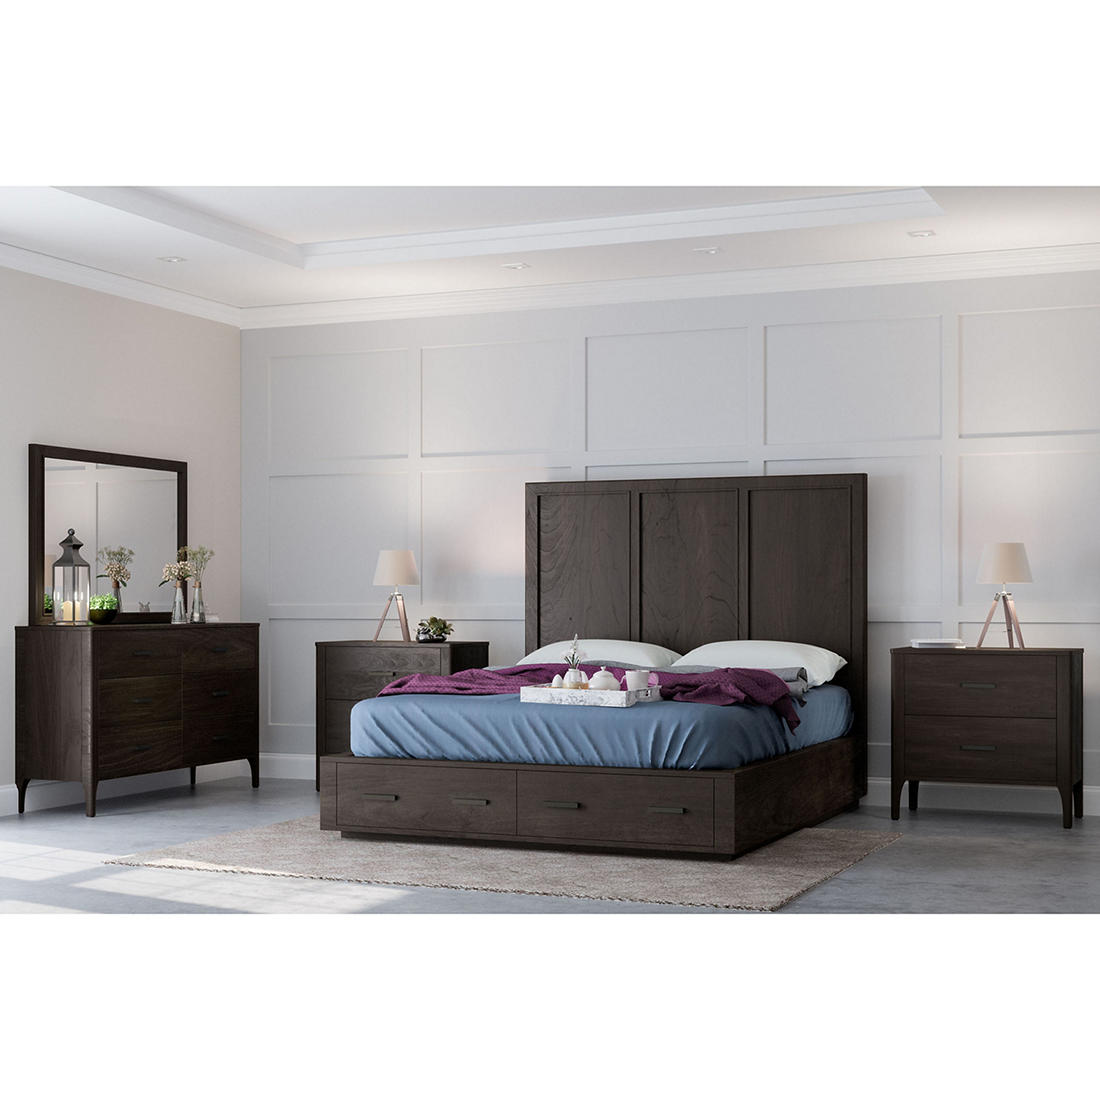 Abbyson Living Donna 5-Pc. King Size Bedroom Set - Brown